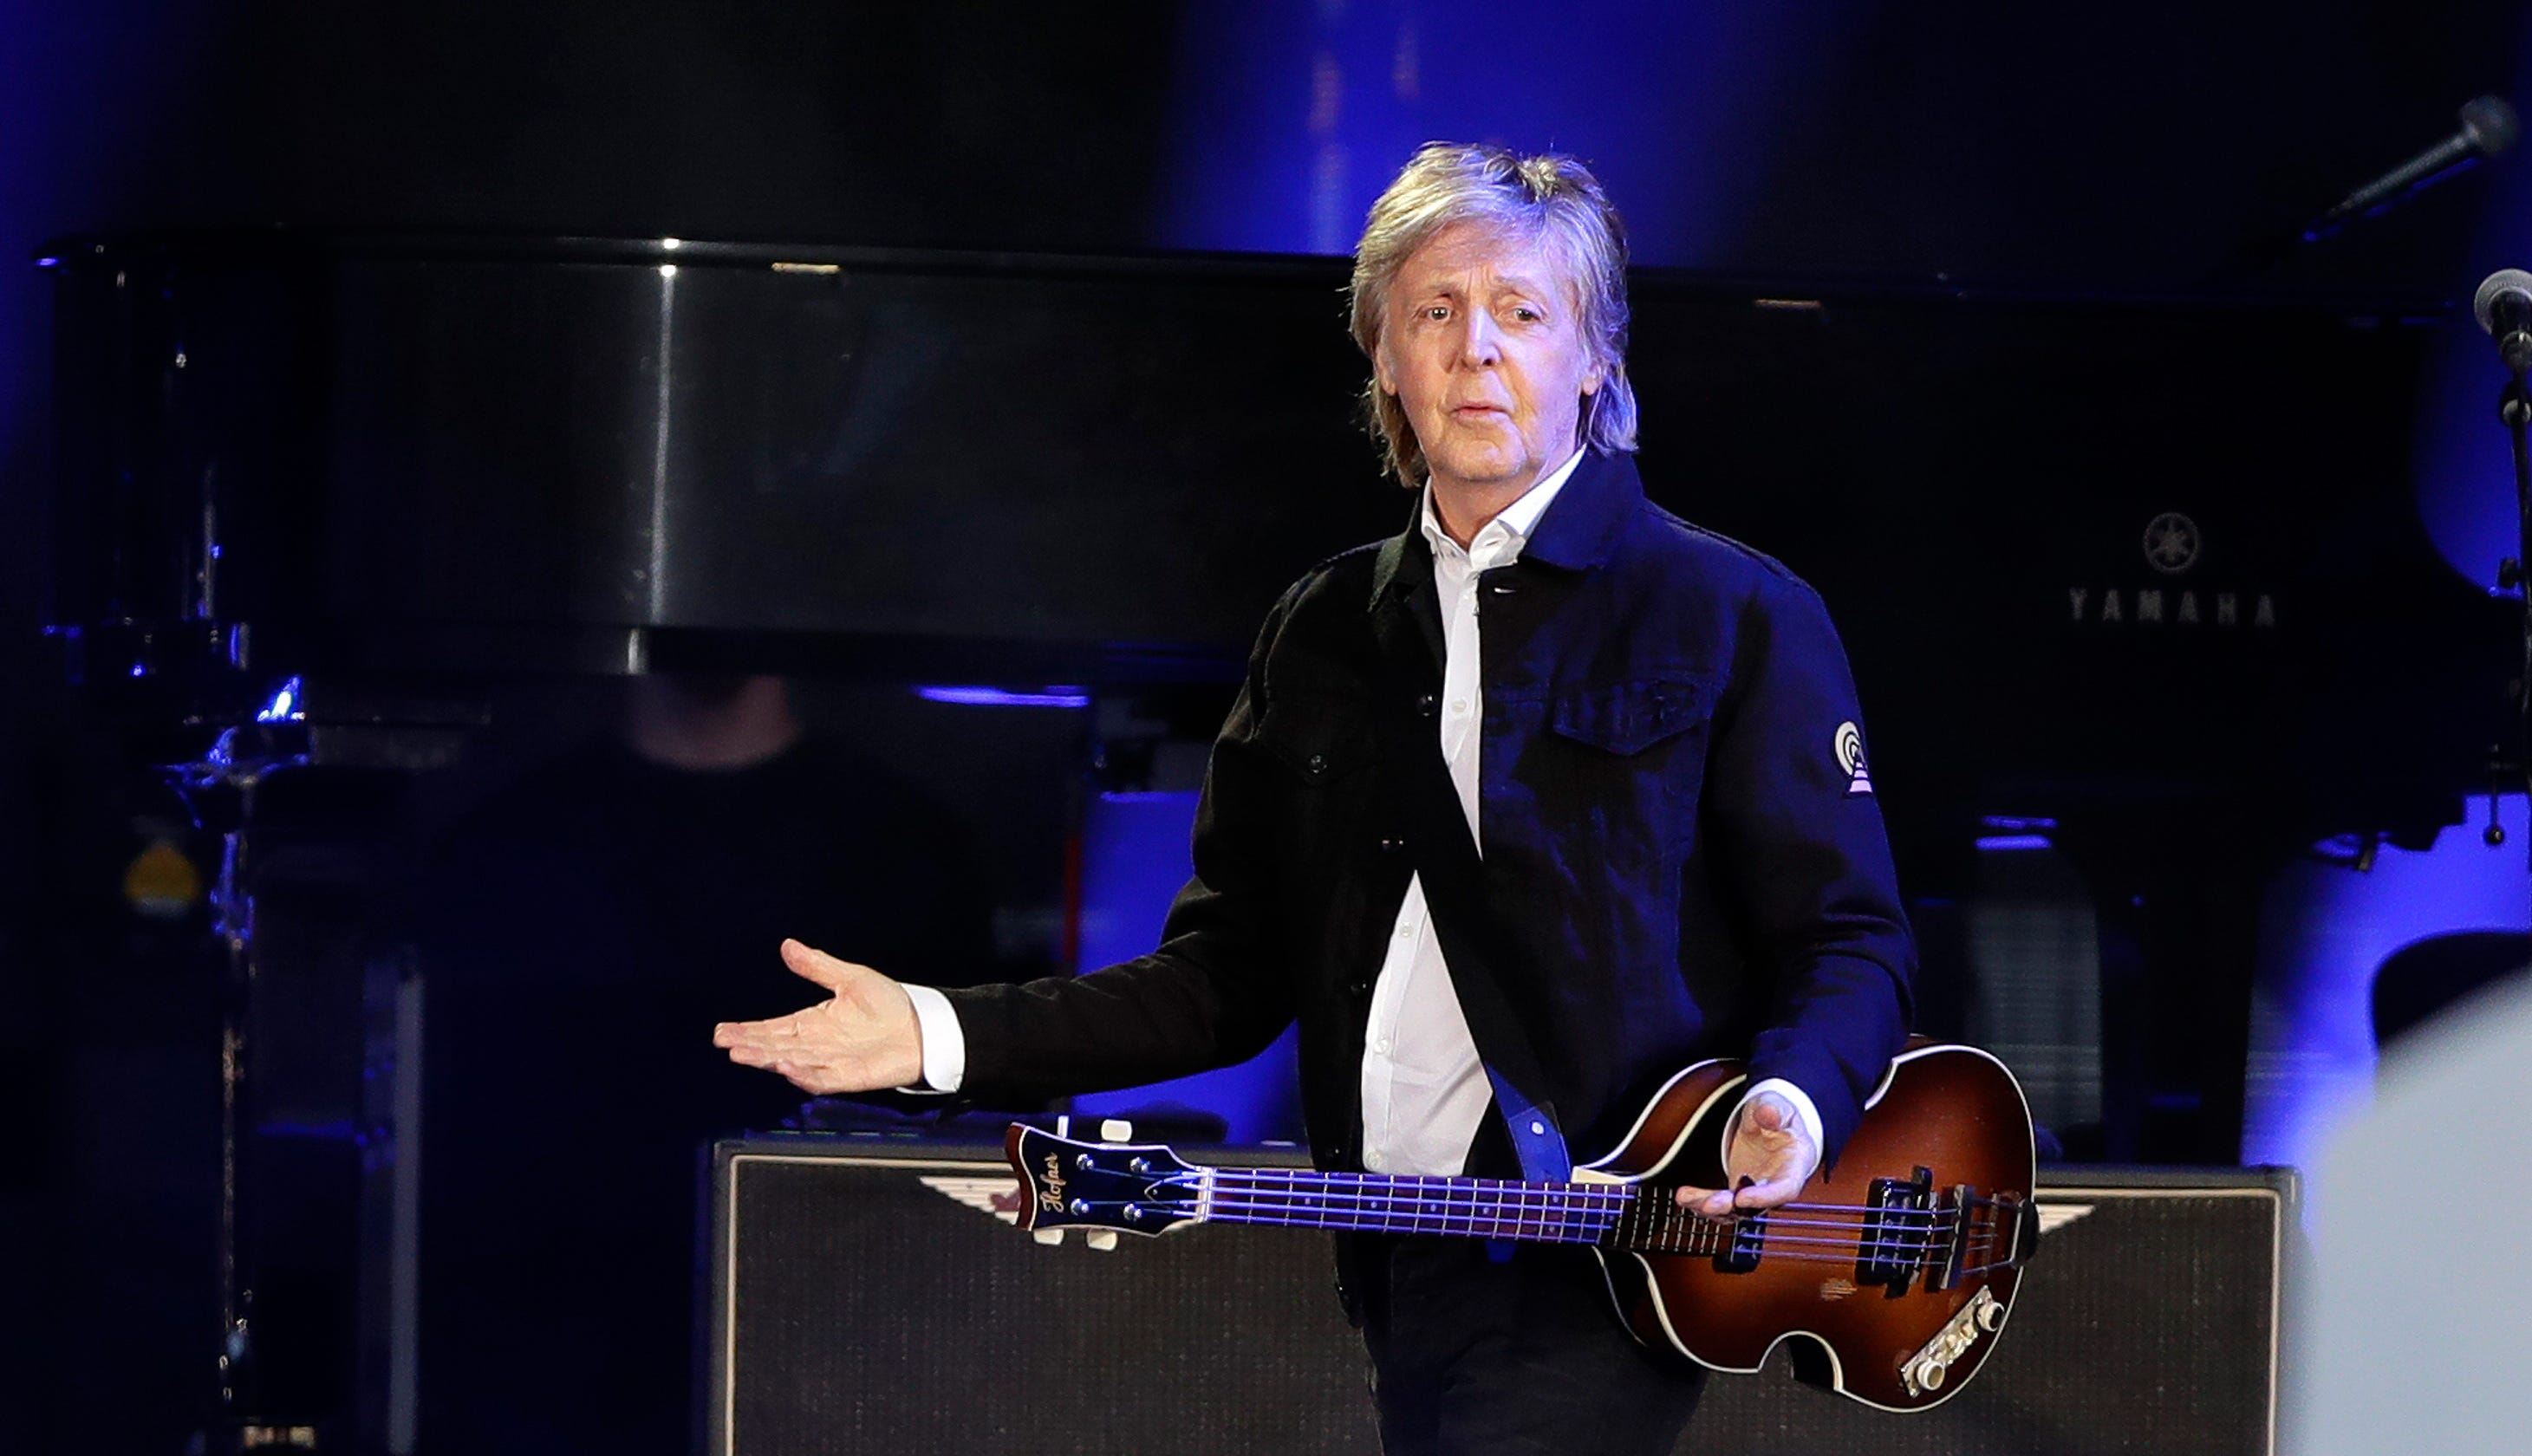 Paul McCartney is now a Packers shareholder after 'perfect